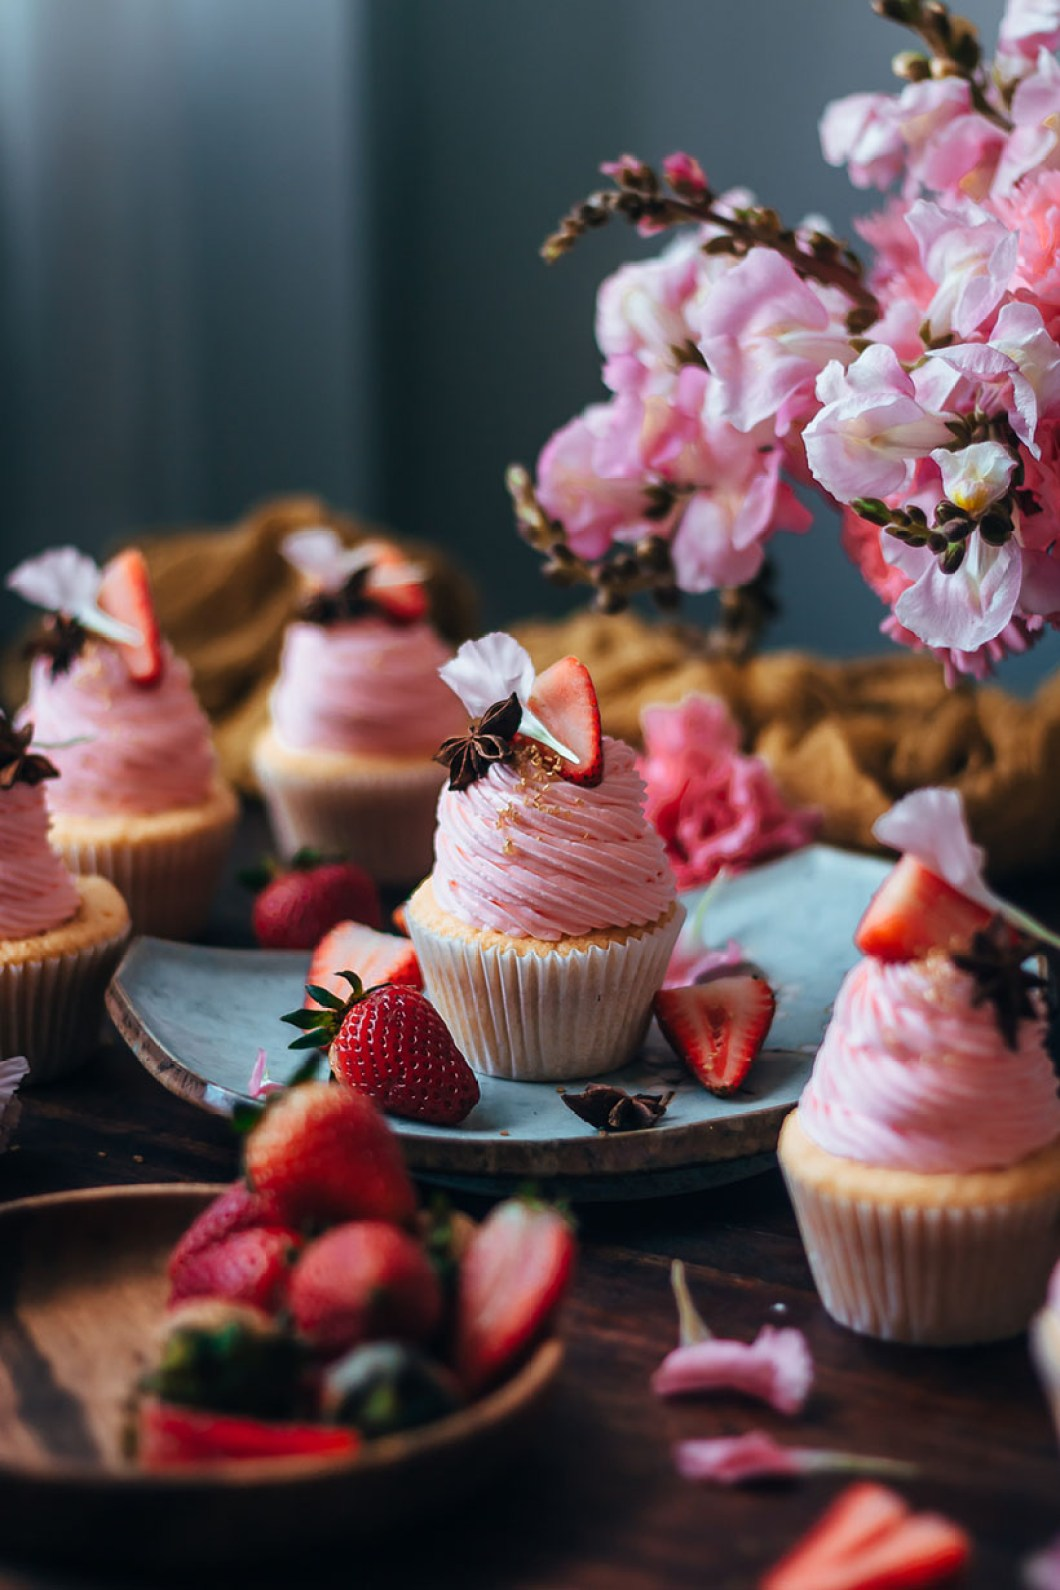 Buttermilk Cupcakes With Strawberry Jam And Yogurt Frosting Historias Del Ciervo By Julian Angel